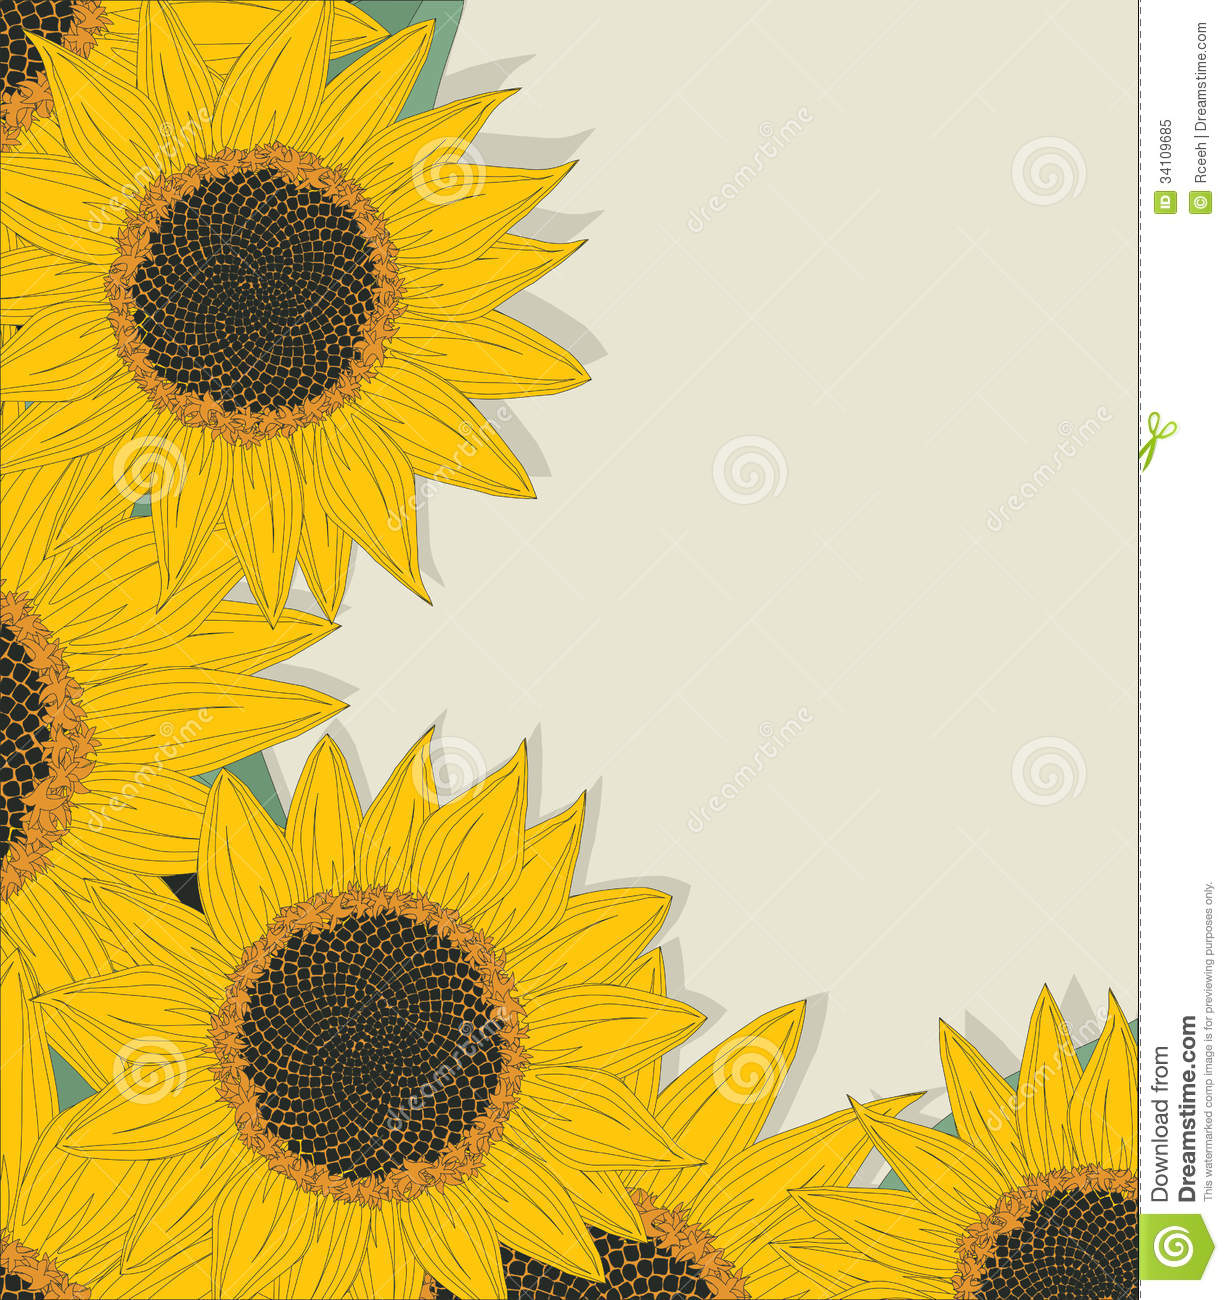 Sketchy Sunflowers Card Royalty Free Stock Photo - Image ... Sunflower Vector Black And White